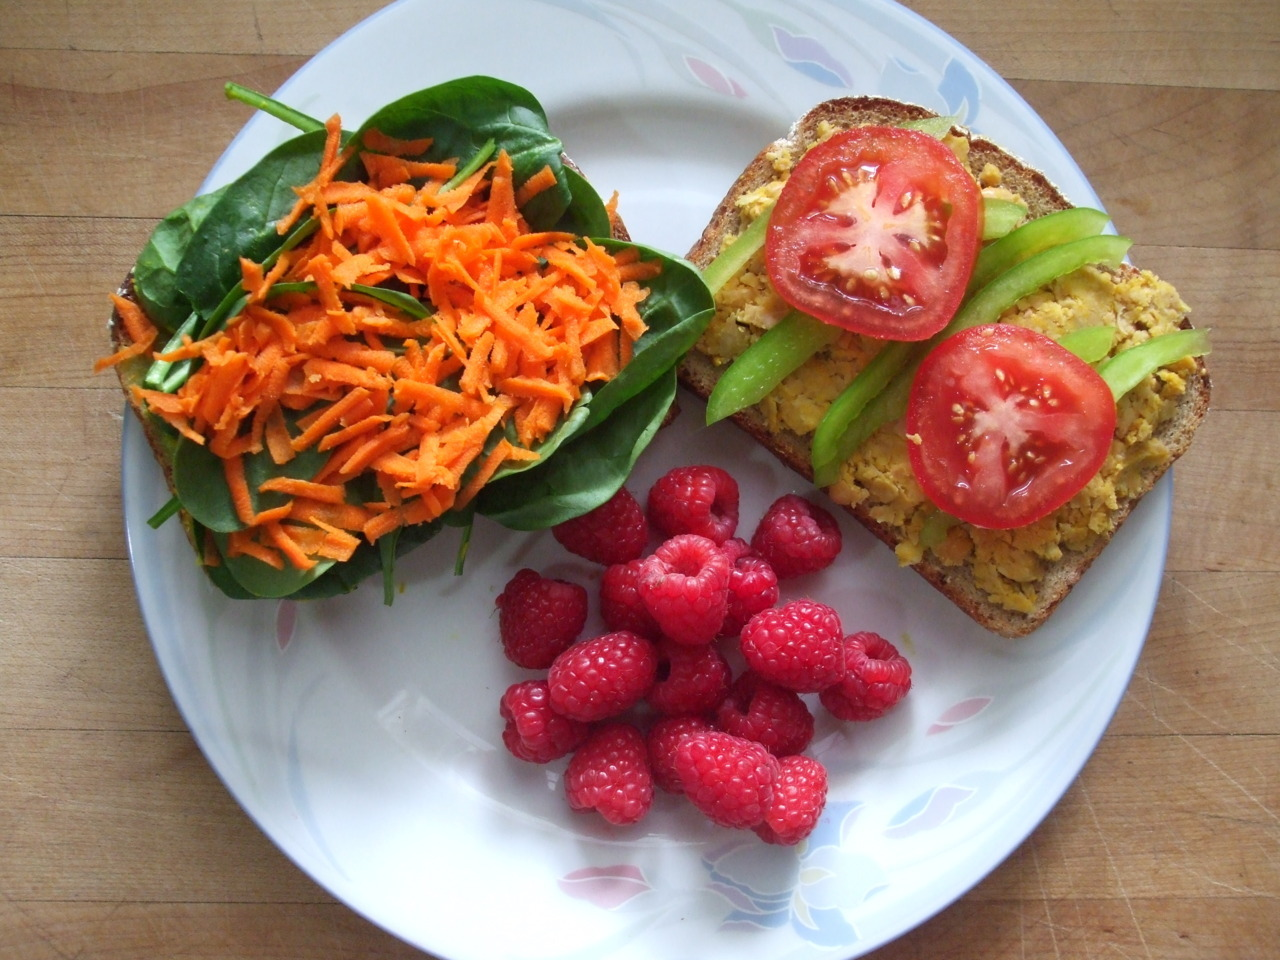 whole grain sandwich with guacamole, mustard, spinach, carrot, green pepper, tomato, sliced tofurky kielbasa, chickpeas mashed with soy sauce, and raspberries.